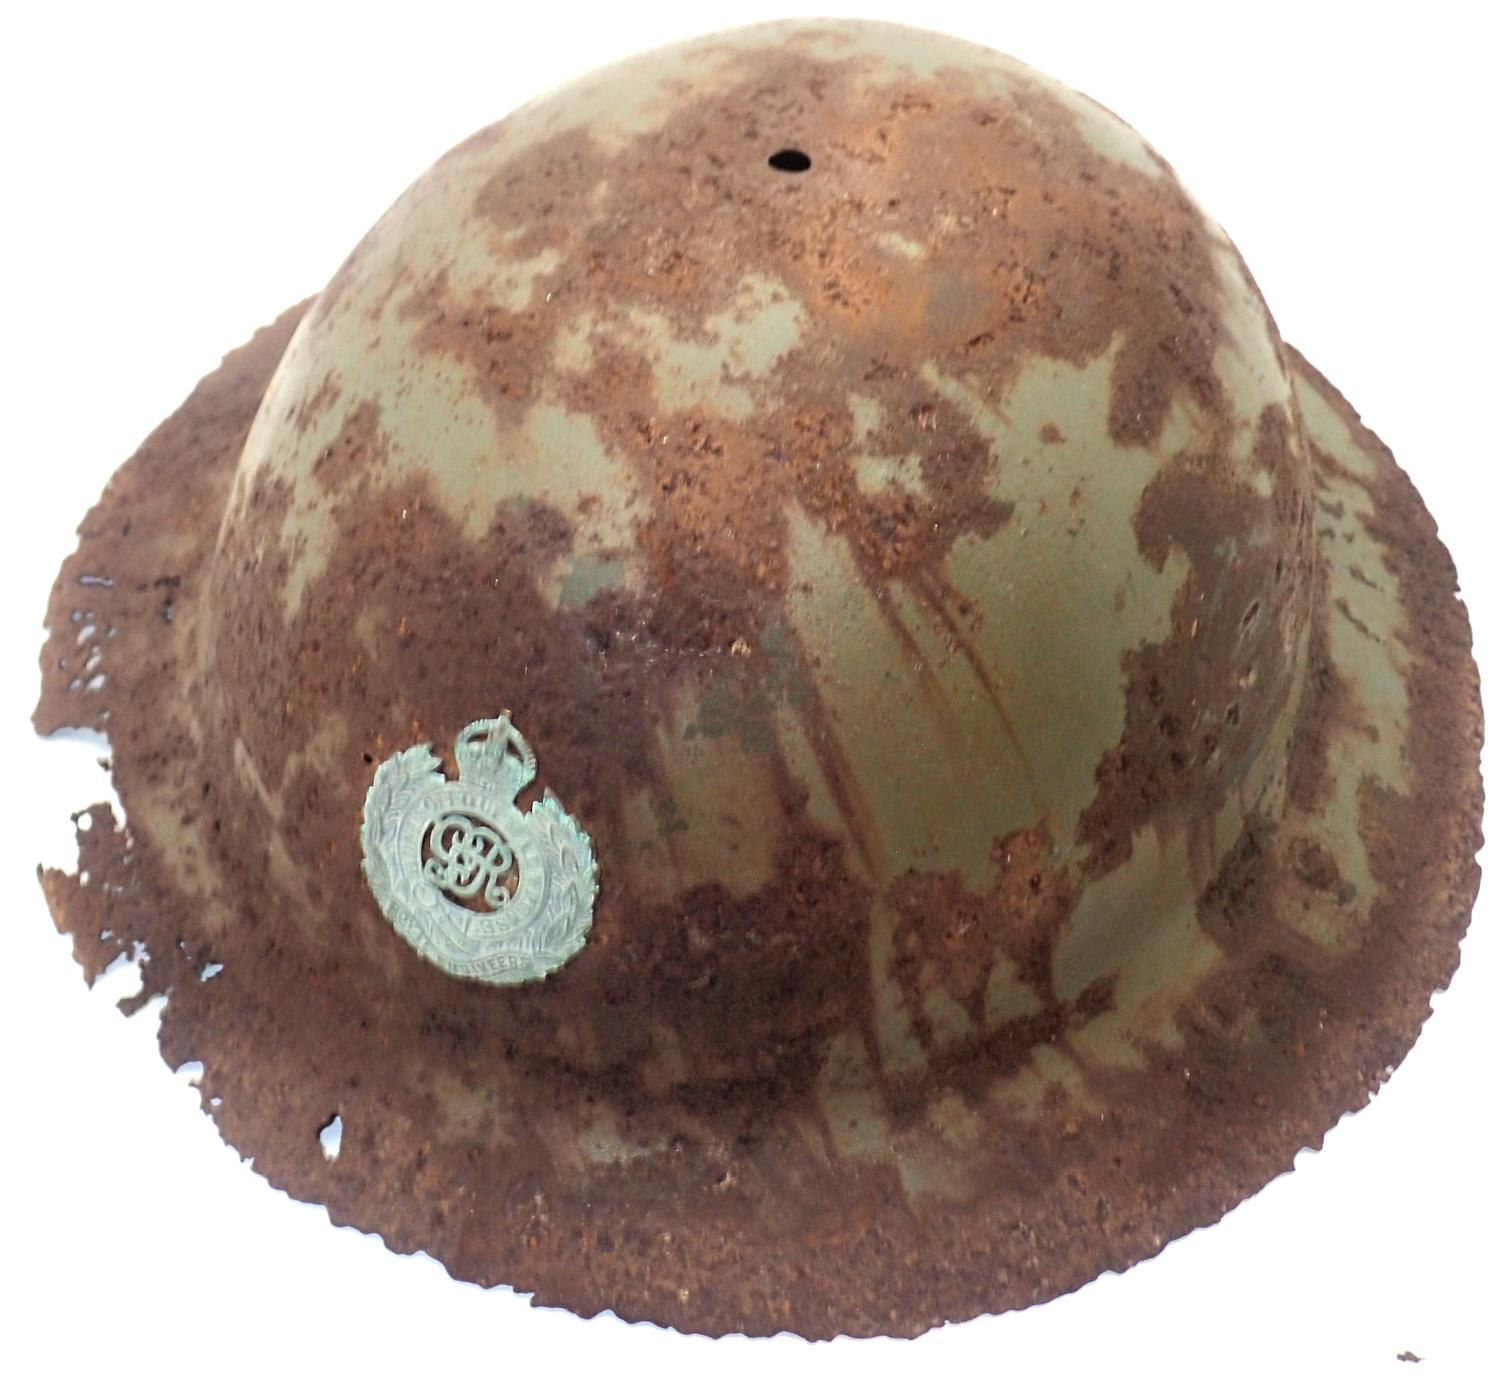 WWI relic Royal Engineers Brodie helmet, reputedly a Somme area barn find. P&P Group 2 (£18+VAT